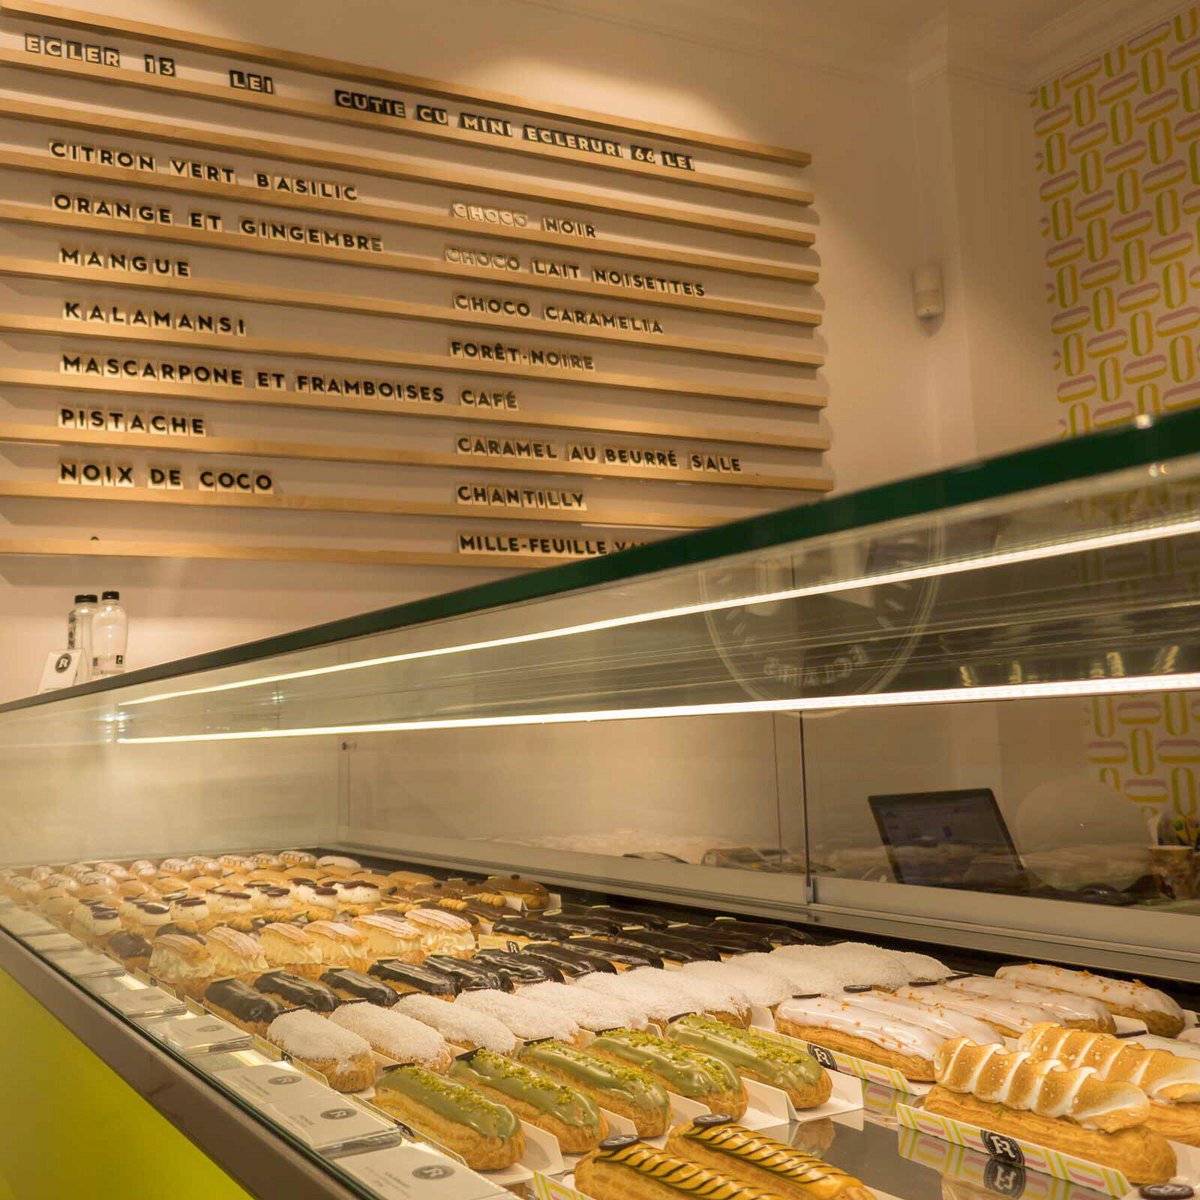 I was never into #eclairs until I visited #French #Revolution in #Bucharest last month. The night before I left, I had to go to their 2nd location to get one last salted caramel. When I return to #experiencebucharest I will visit this #Patisserie my first day! #pastry<br>http://pic.twitter.com/NOPIg7NKc5